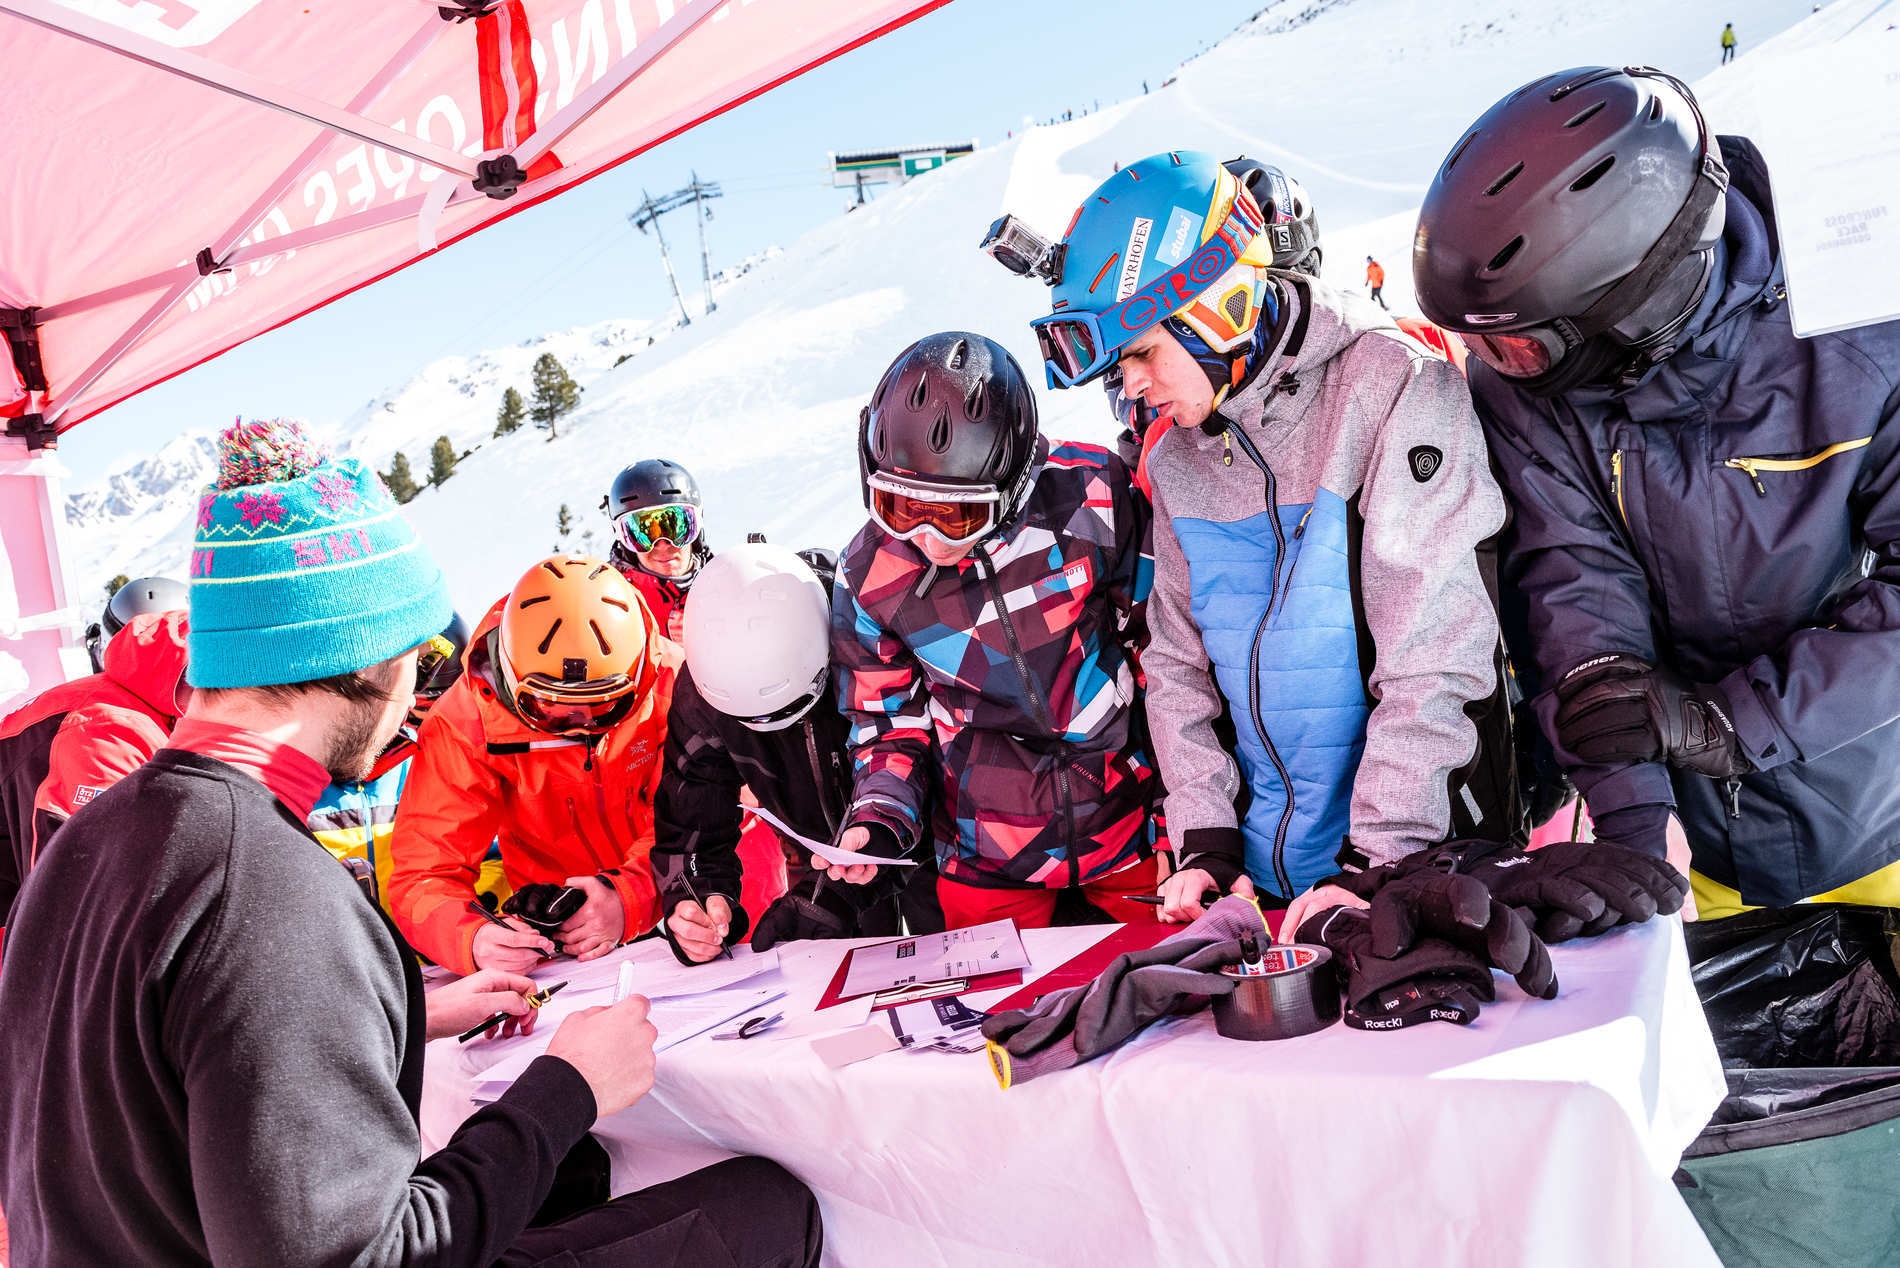 obergurgl 08 03 2019 lifestyle fs sb christian riefenberg qparks 11